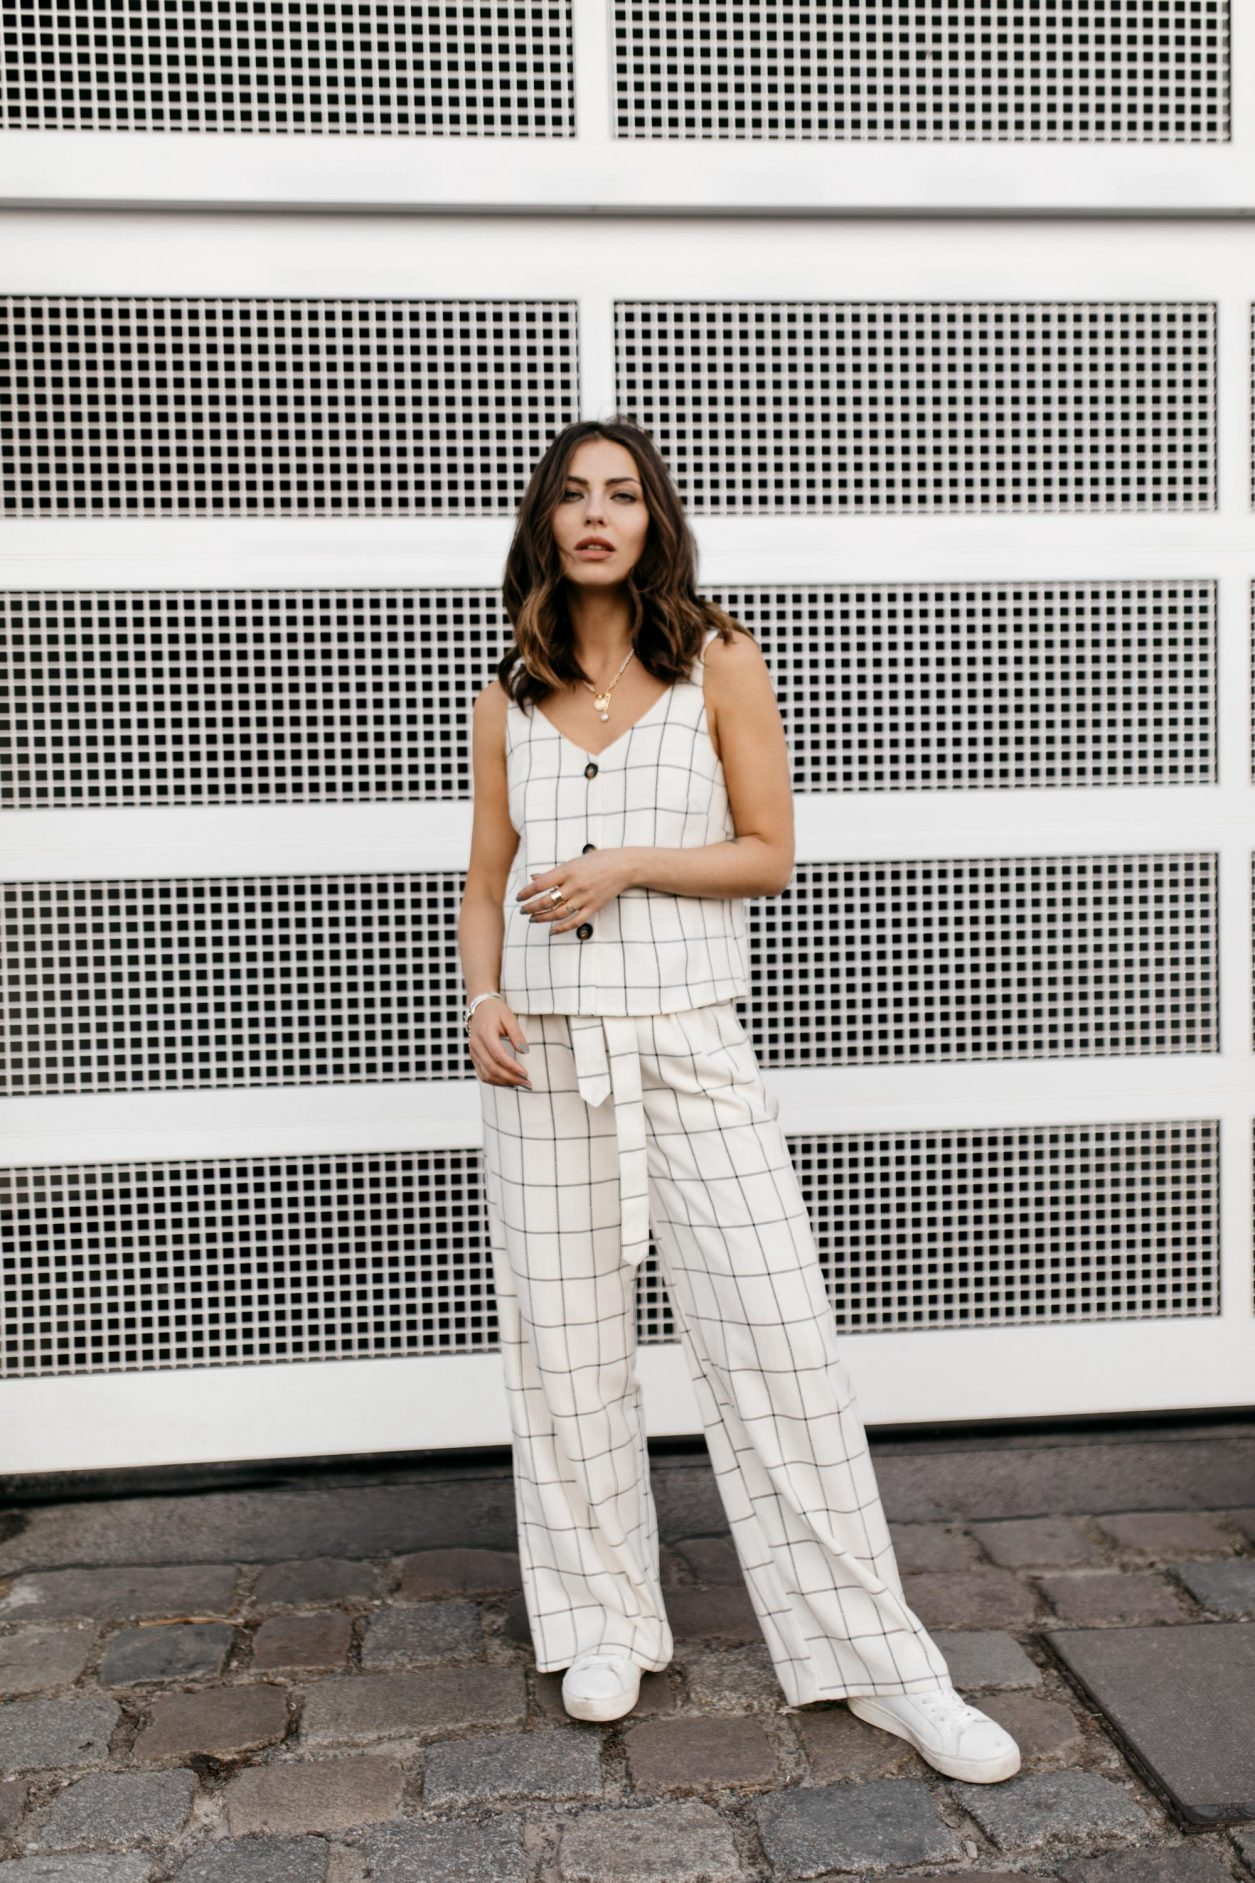 Anzeige | Streetstyle Outfit by Masha Sedgwick | Fashion blogger from Berlin, Germany | Spring summer outfit inspiration, two-pieces checked look in white linen from Gestuz